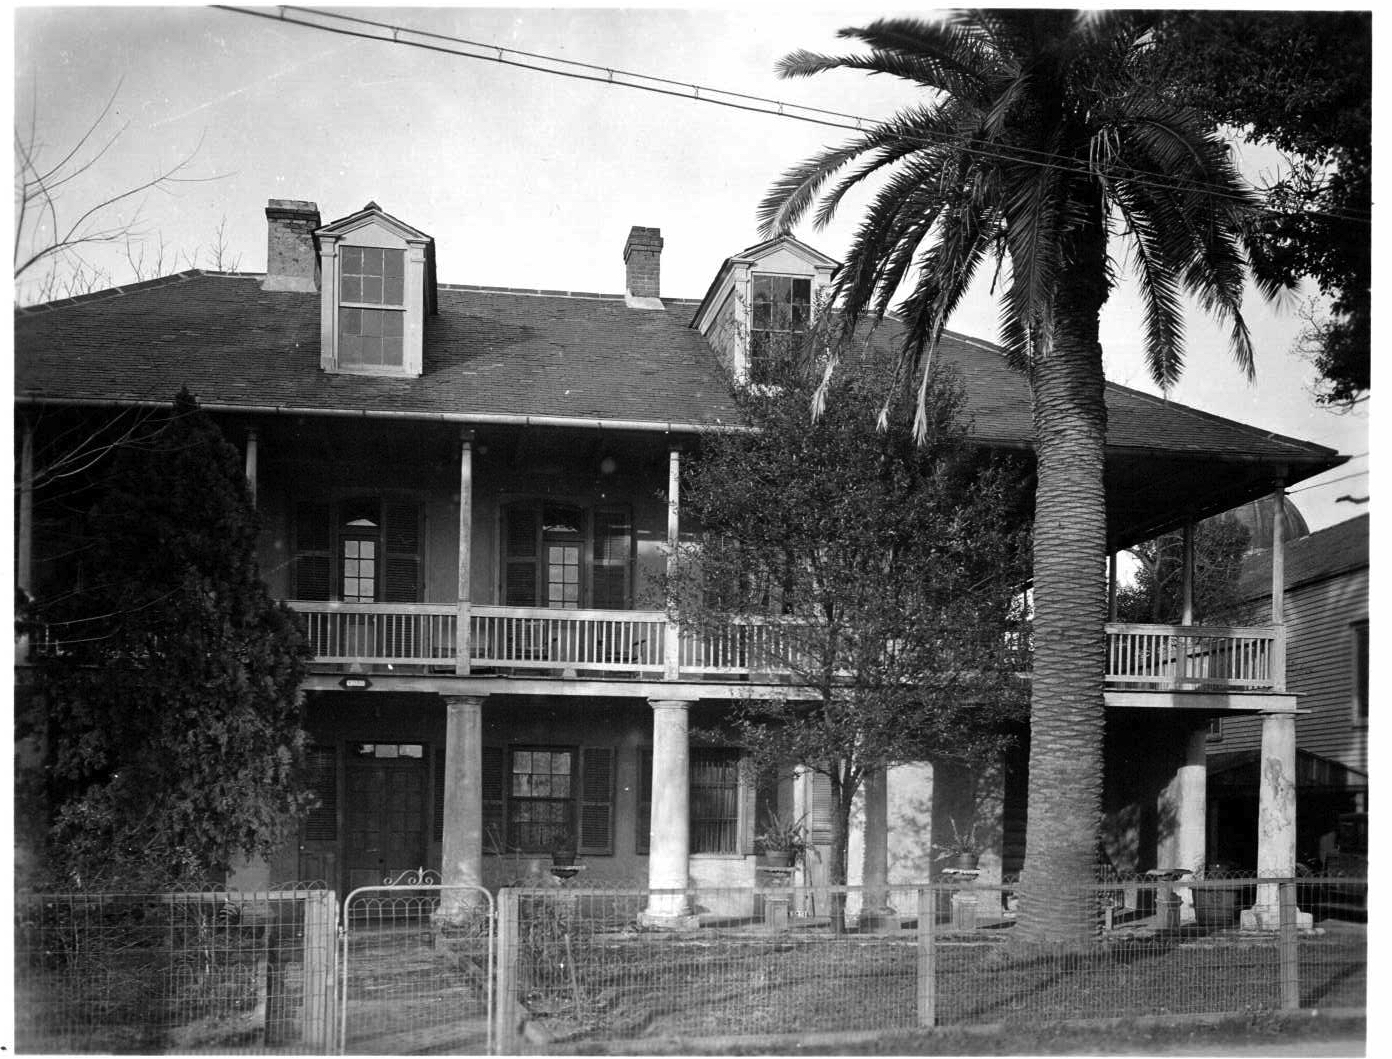 The Pitot House as it appeared in 1936 when it served as a home for the Missionary Sisters of the Sacred Heart.